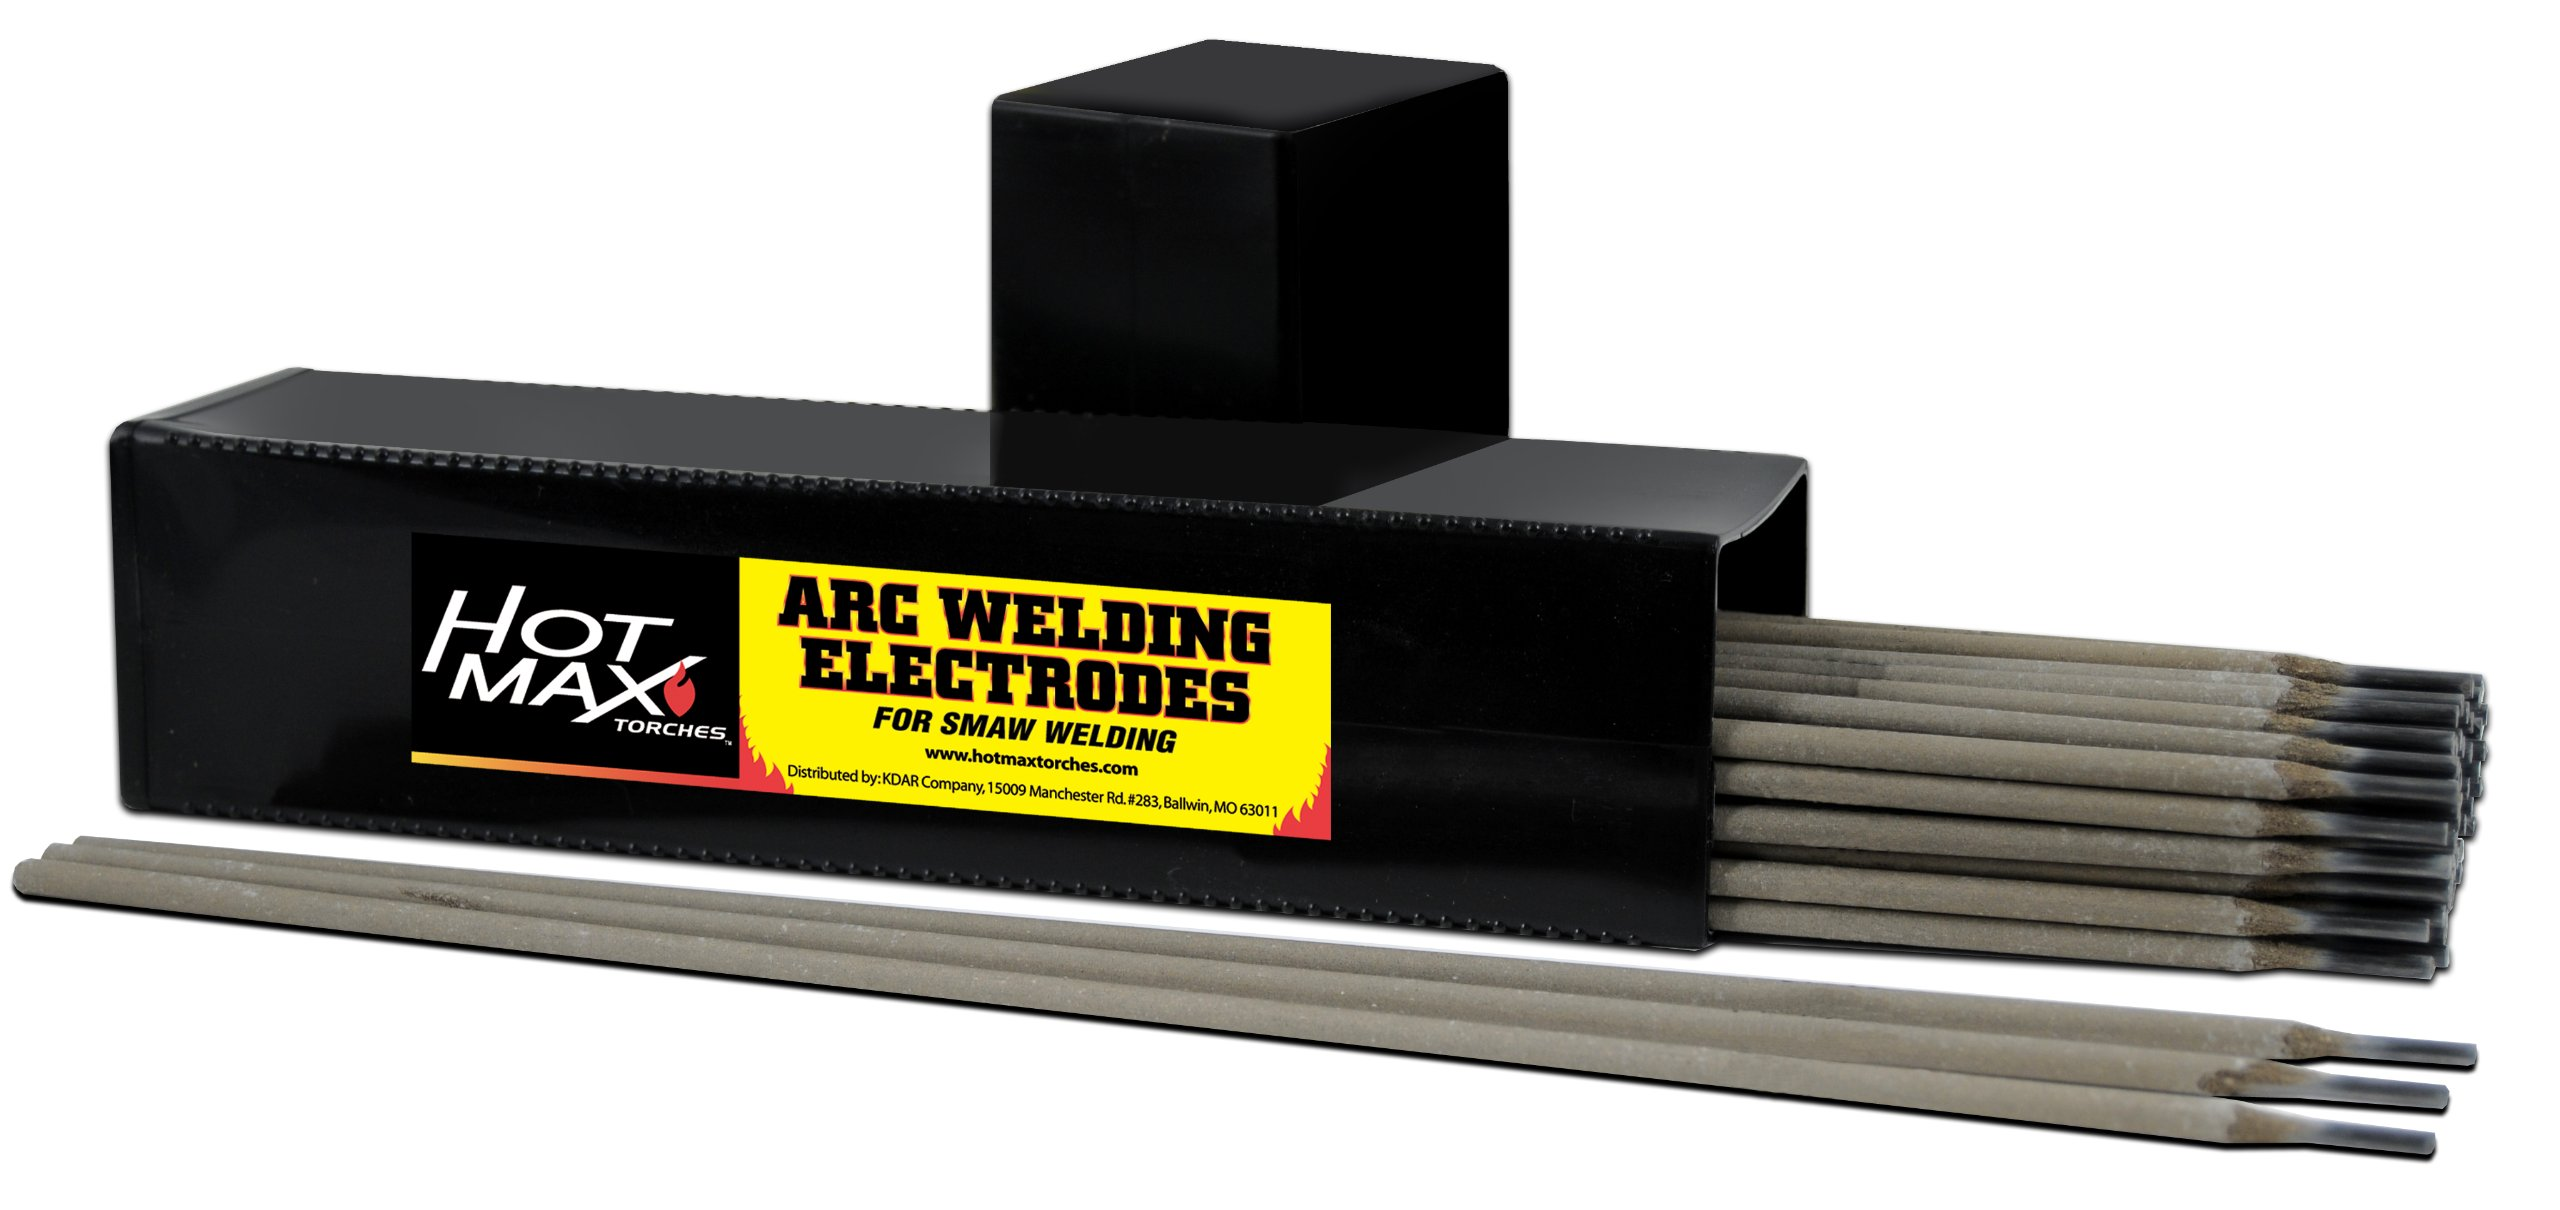 Hot Max 23073 1/8-Inch Stainless Steel E312-16 5# ARC Welding Electrodes